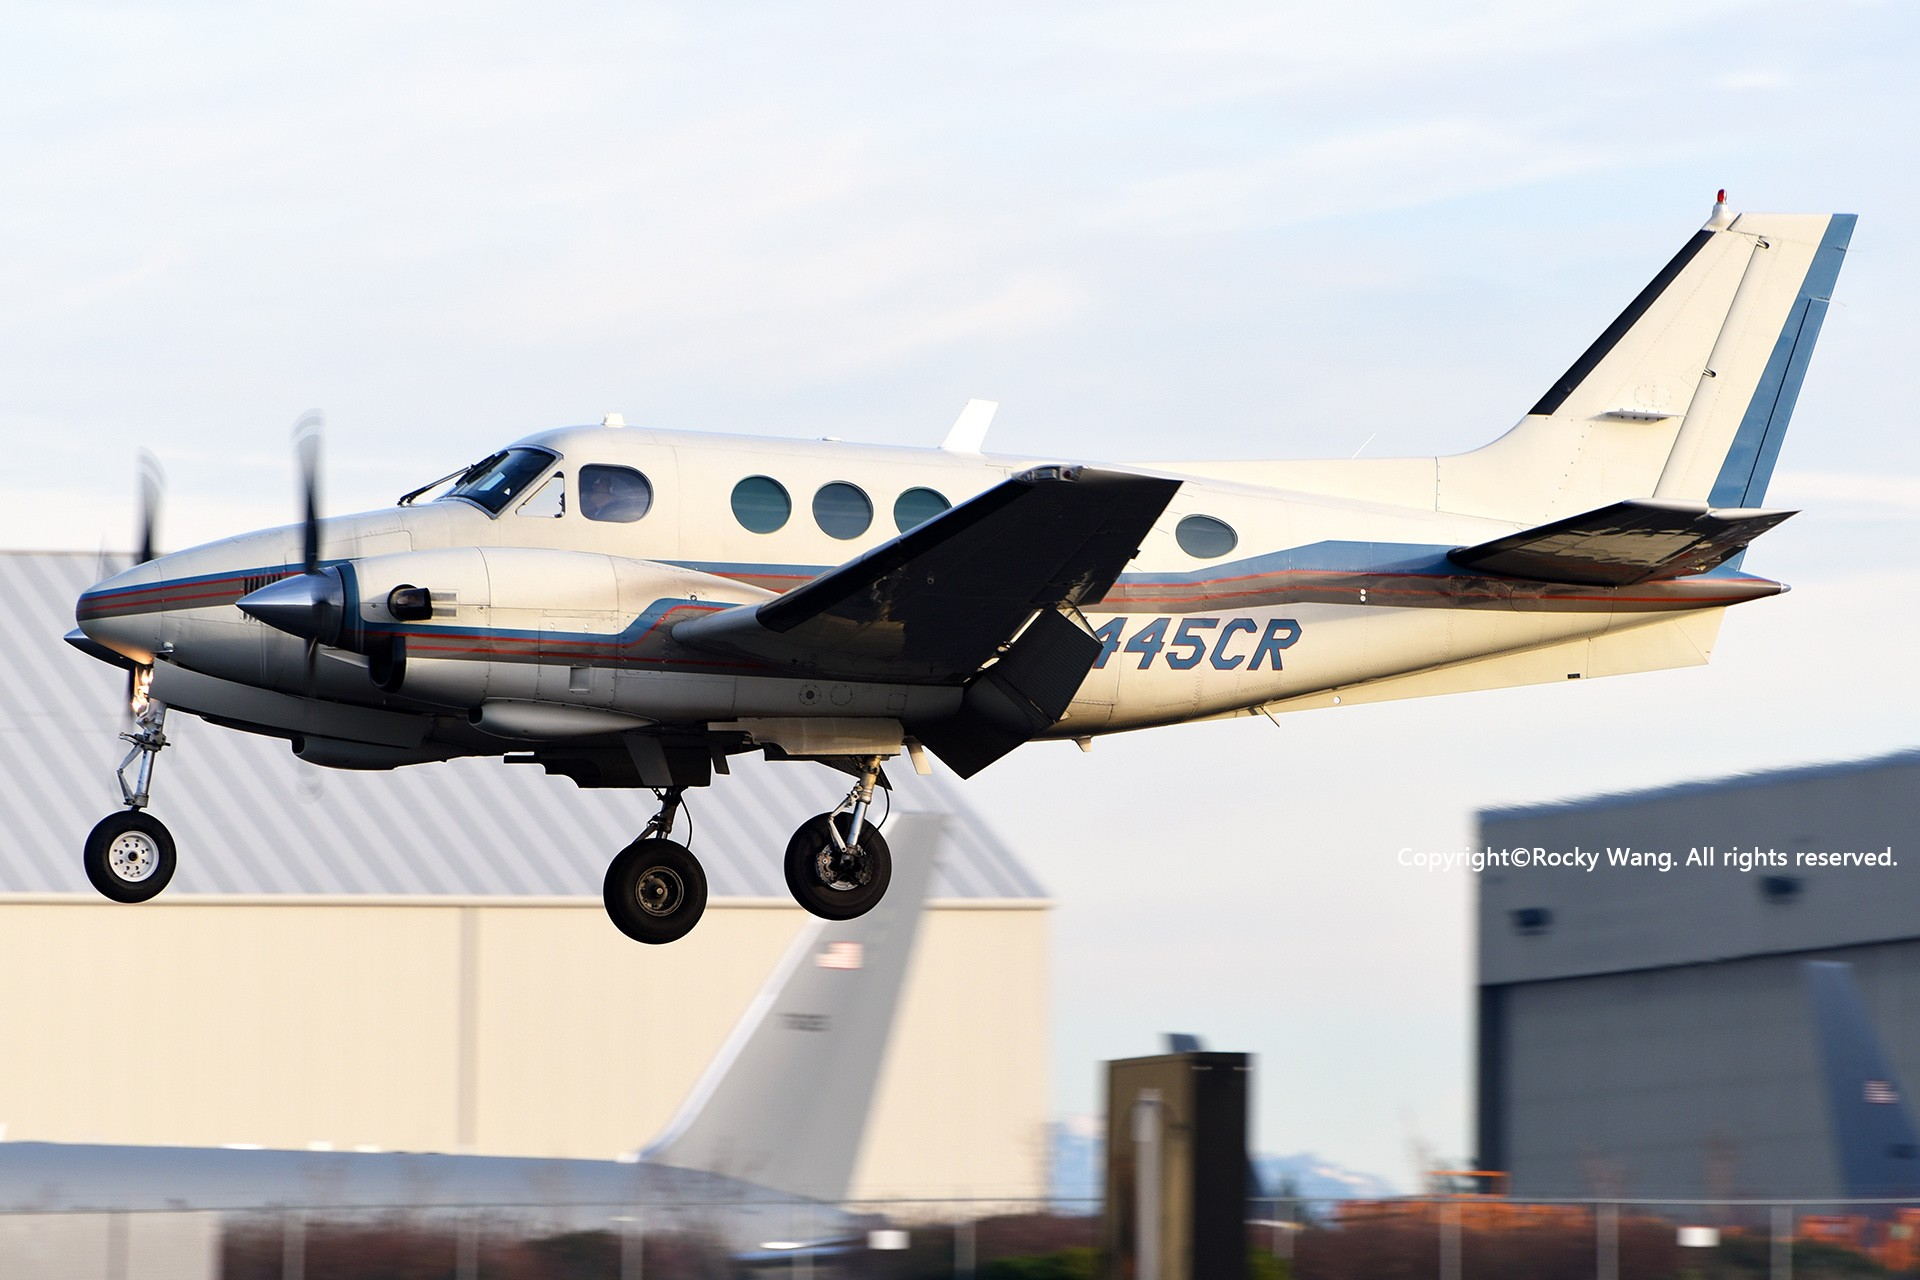 Re:[原创]Seattle 30图 BEECHCRAFT C90 KING AIR N445CR Snohomish County Airport/Paine Field